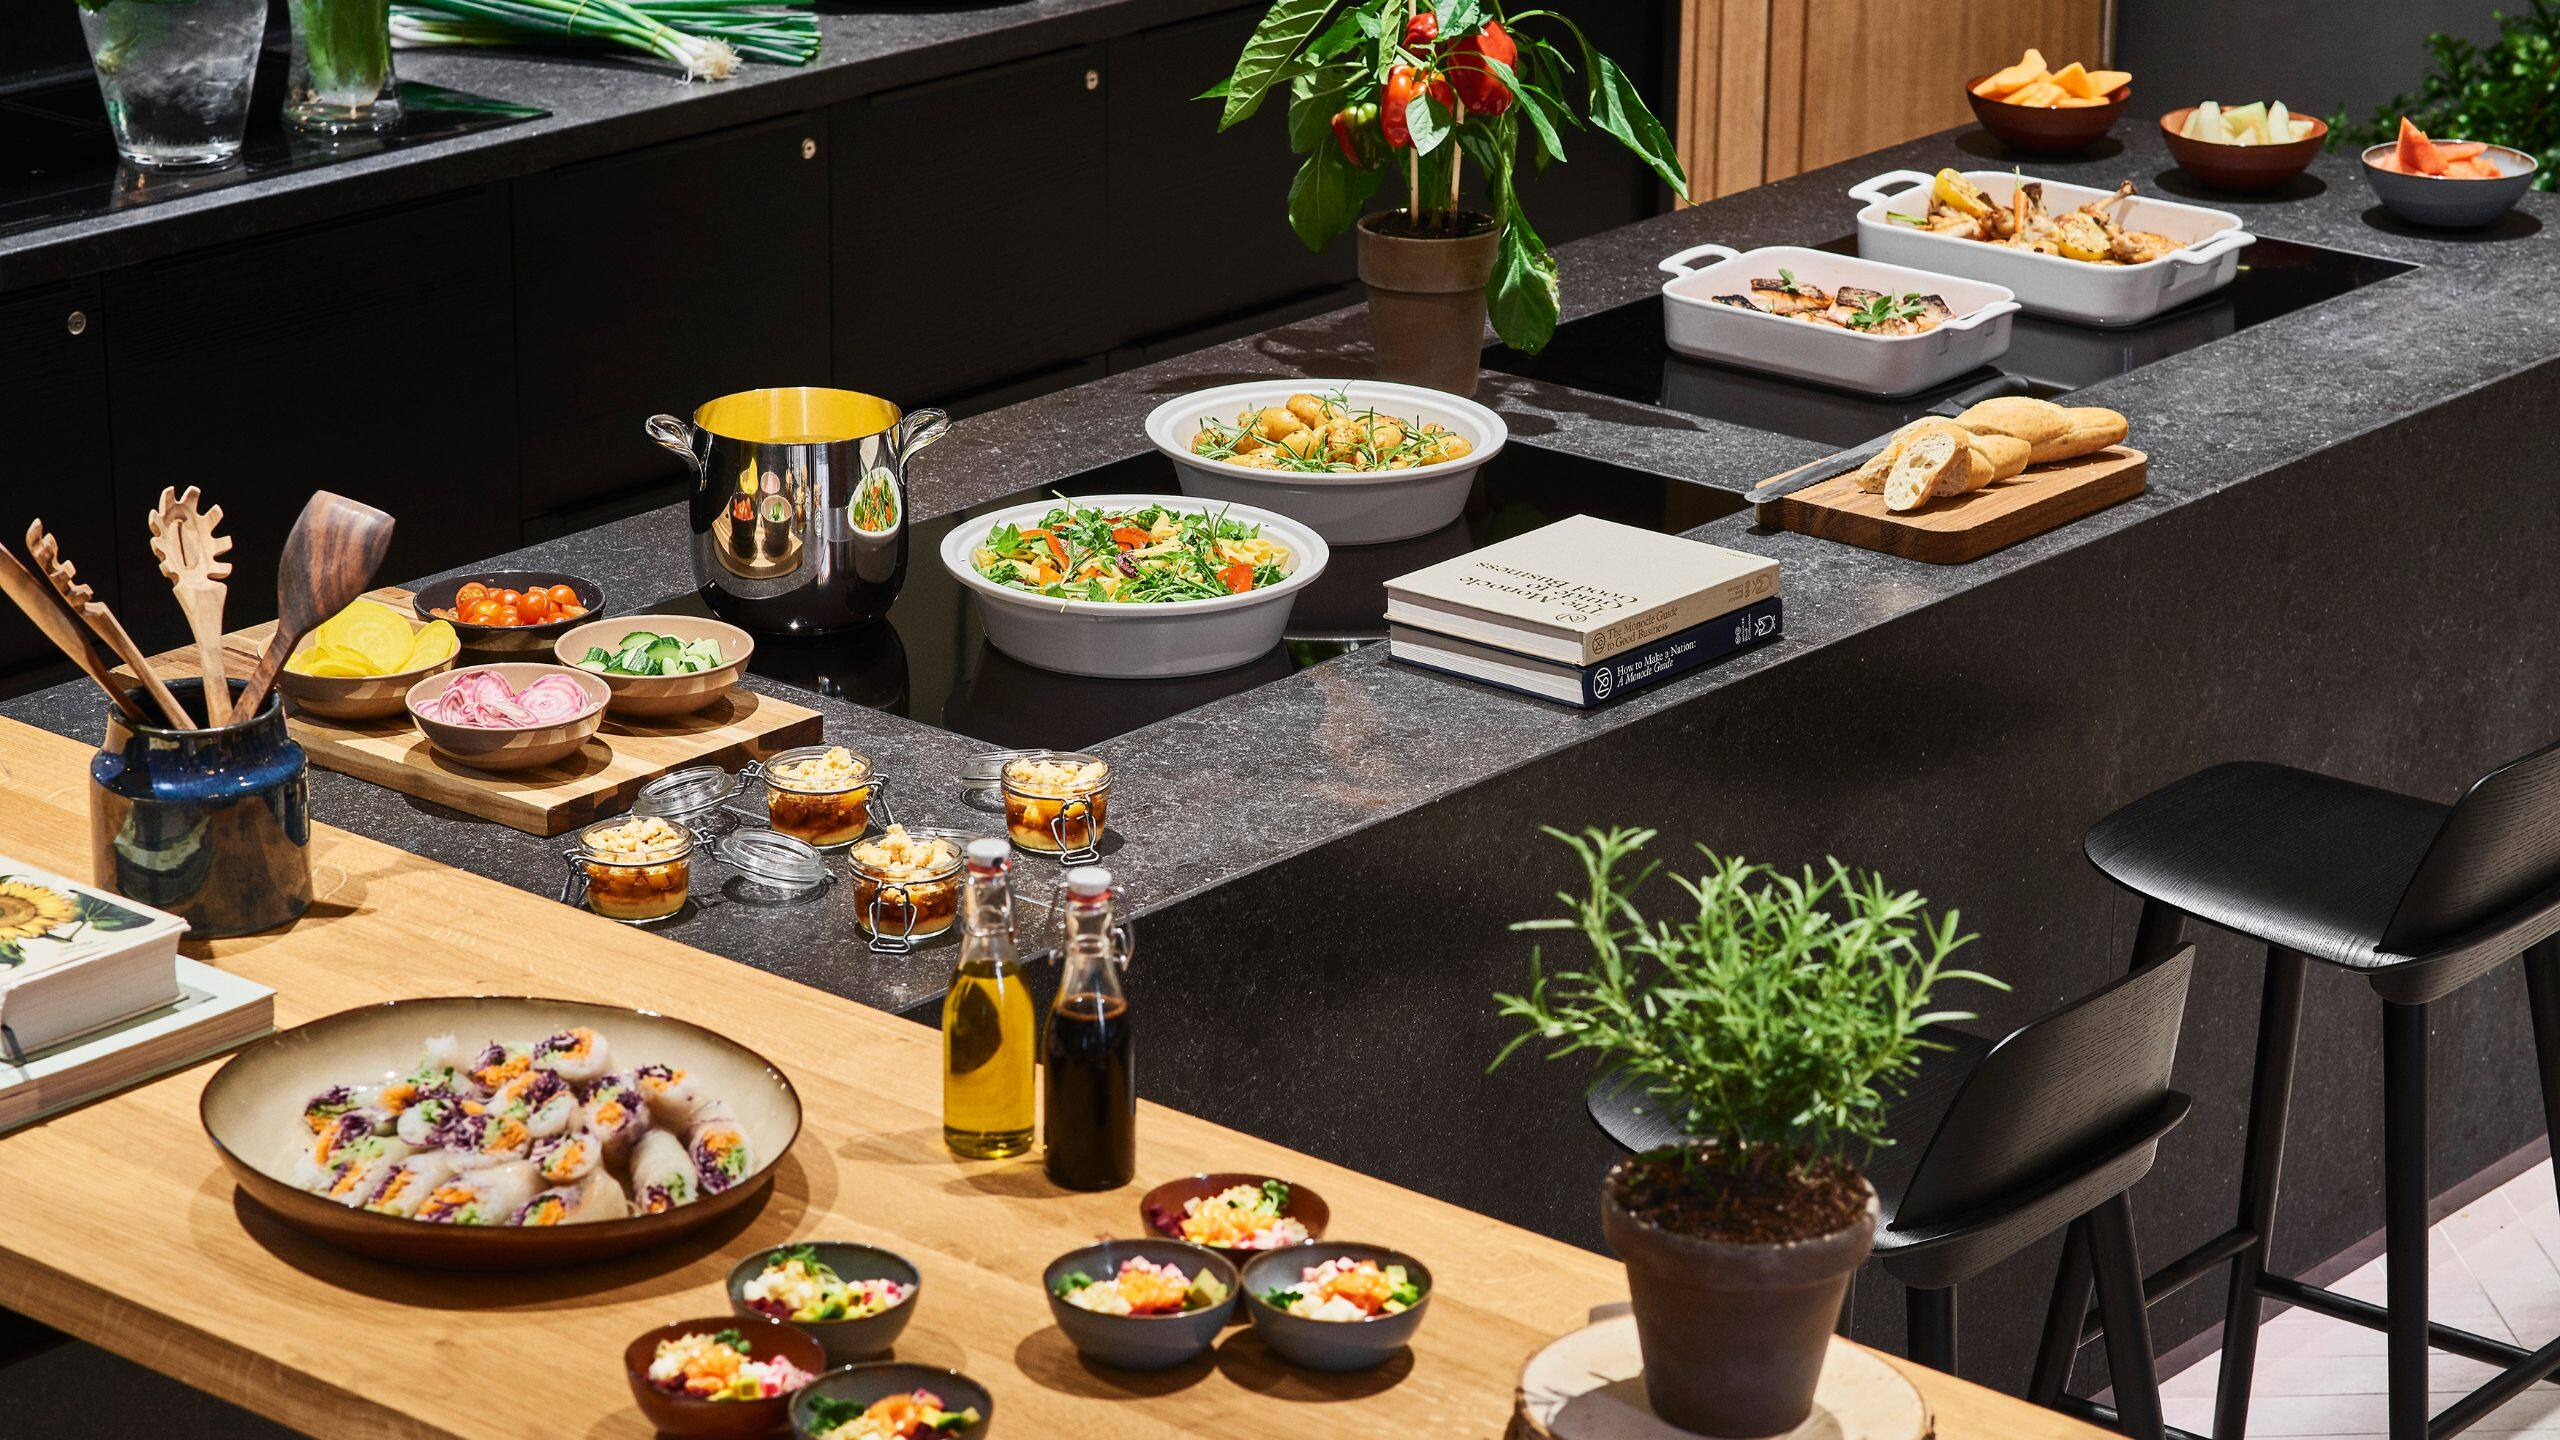 Lunchbuffet Amsterdam Meetings And In Events In Amsterdam Hyatt Regency Amsterdam